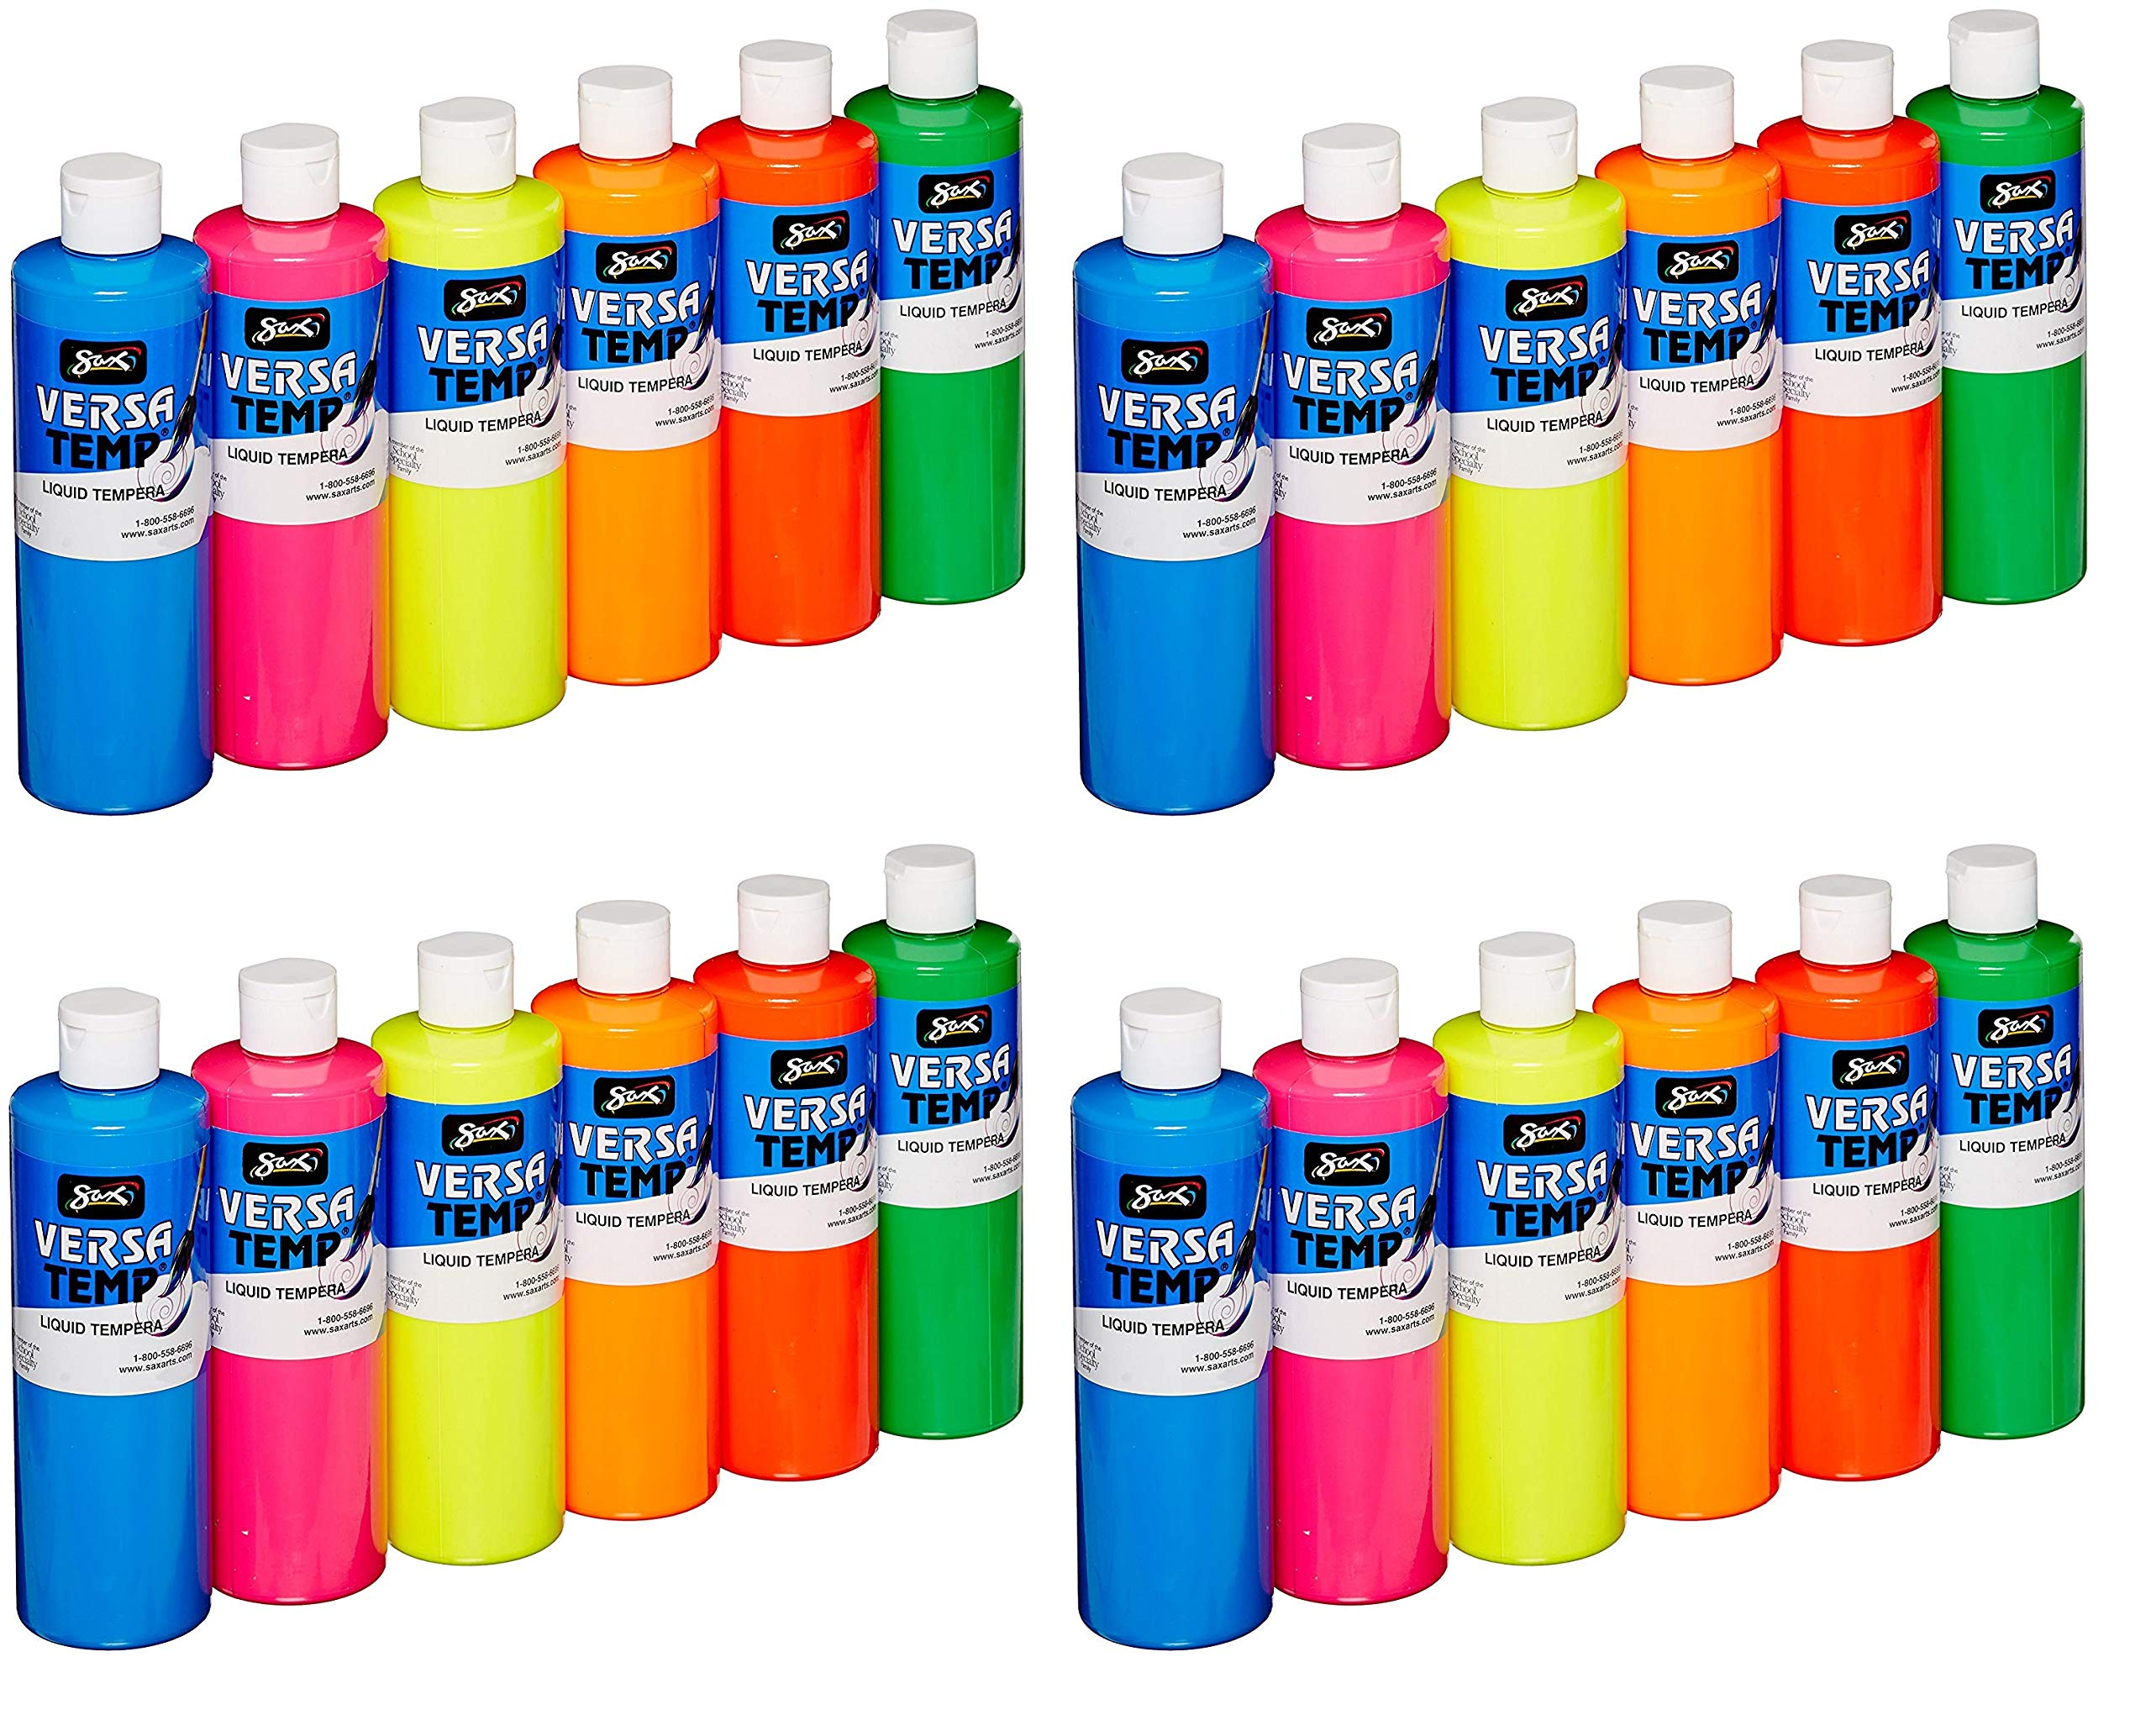 Sax Versatemp Heavy-Body Tempera Paints, Assorted Fluorescent Colors, (Pack of 4)